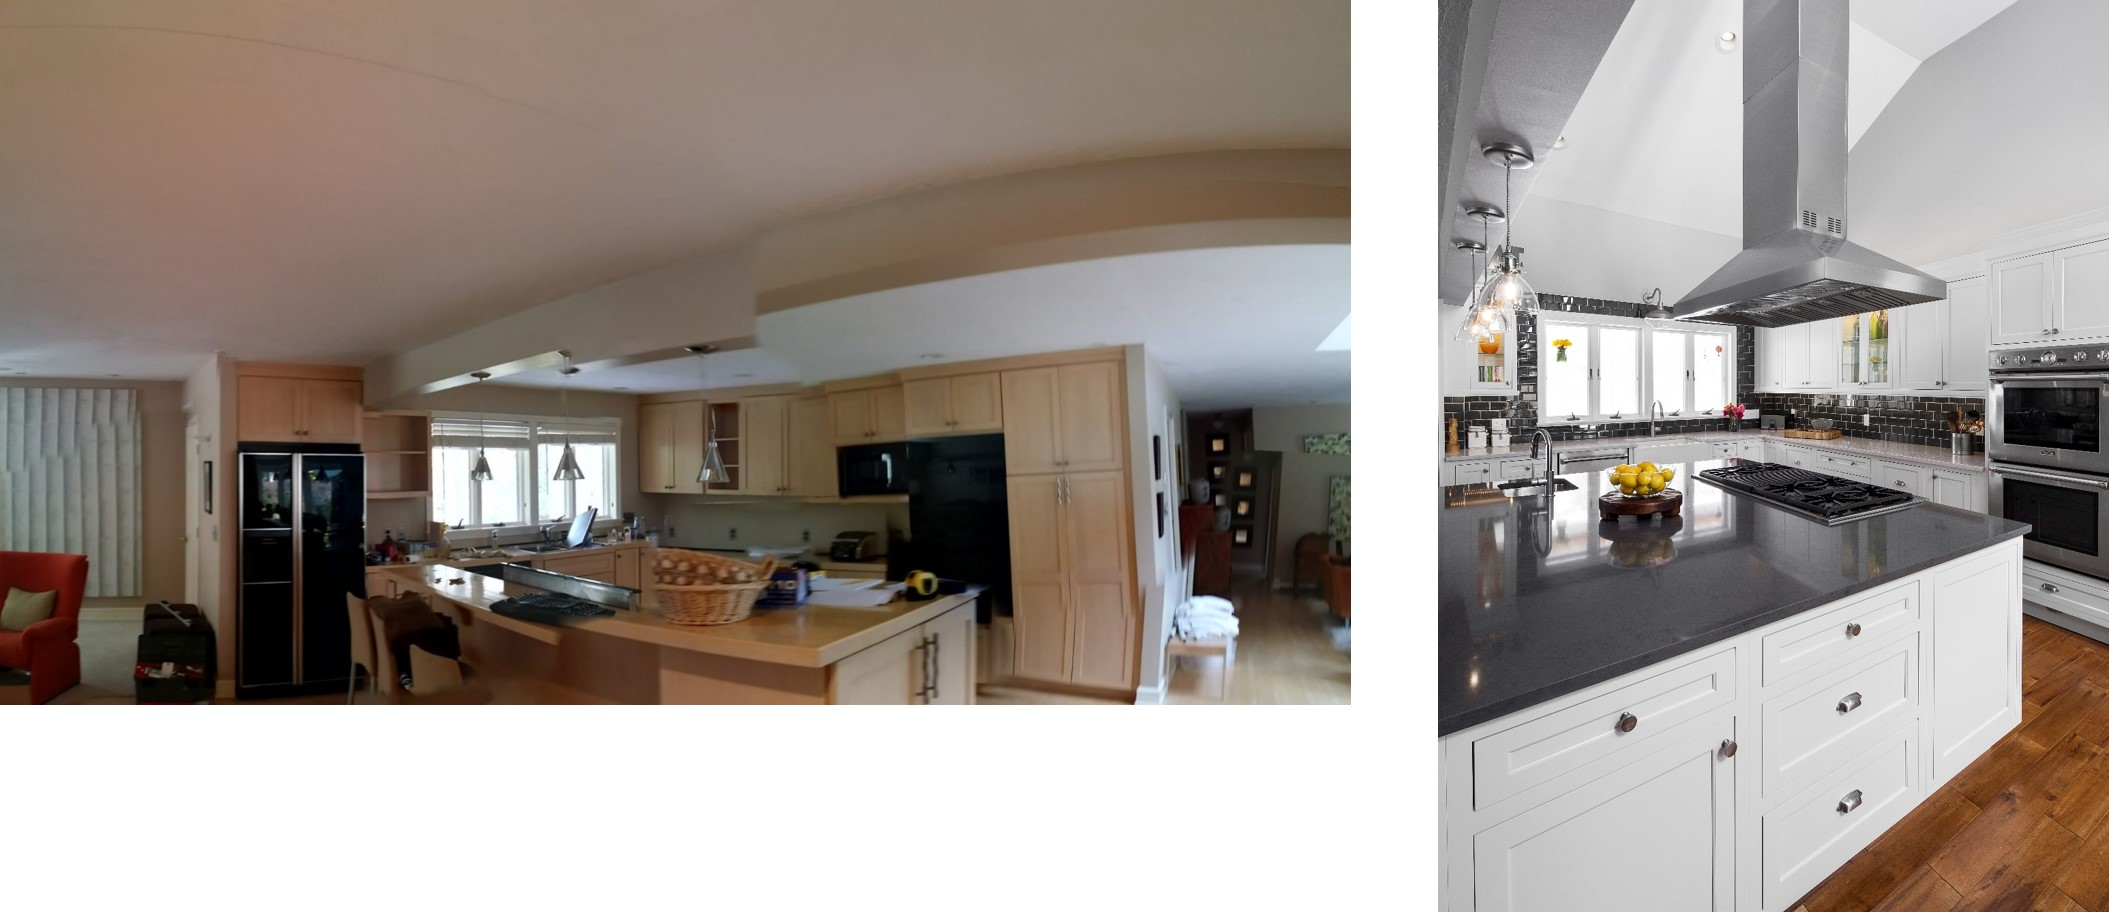 100 Cabinets After2 Jpg With Best Kitchen